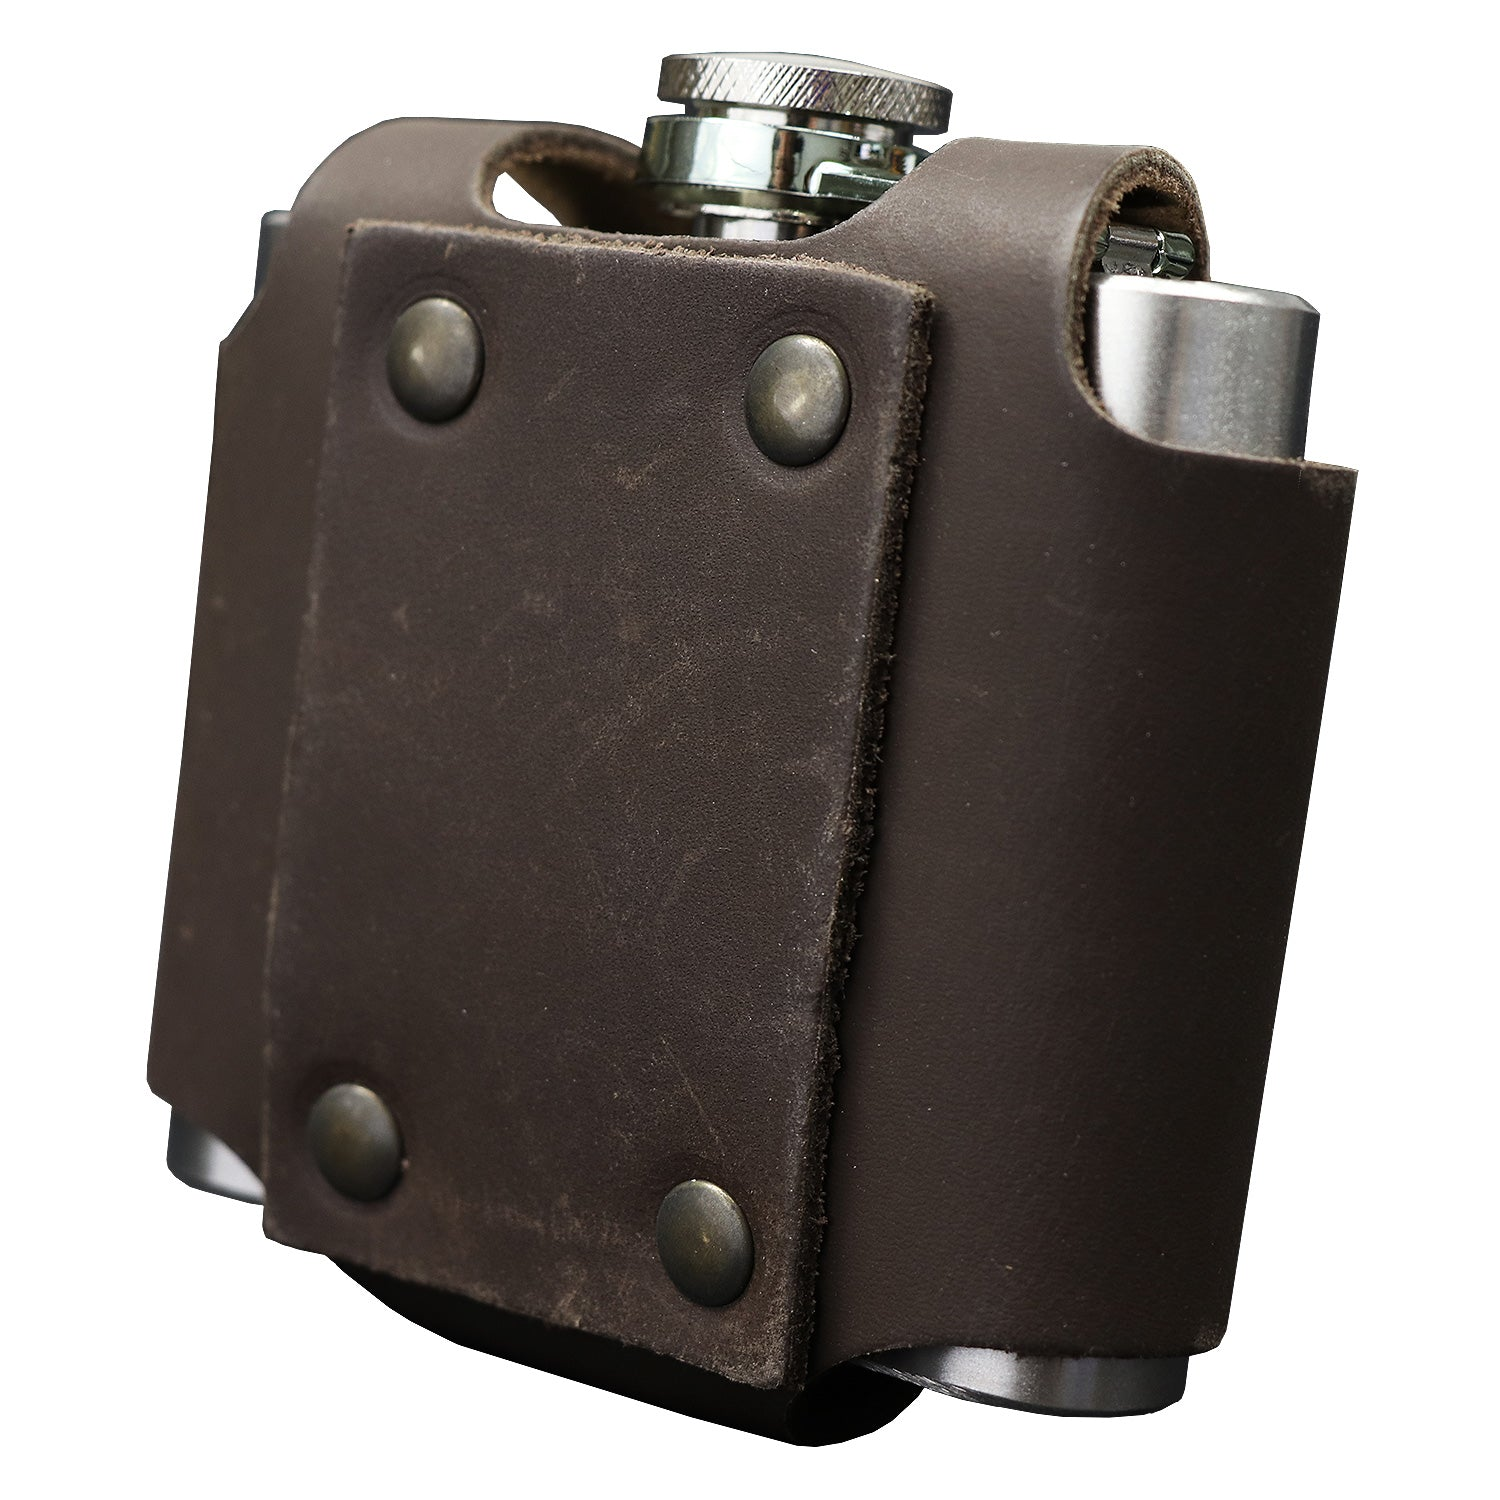 Flask with leather case